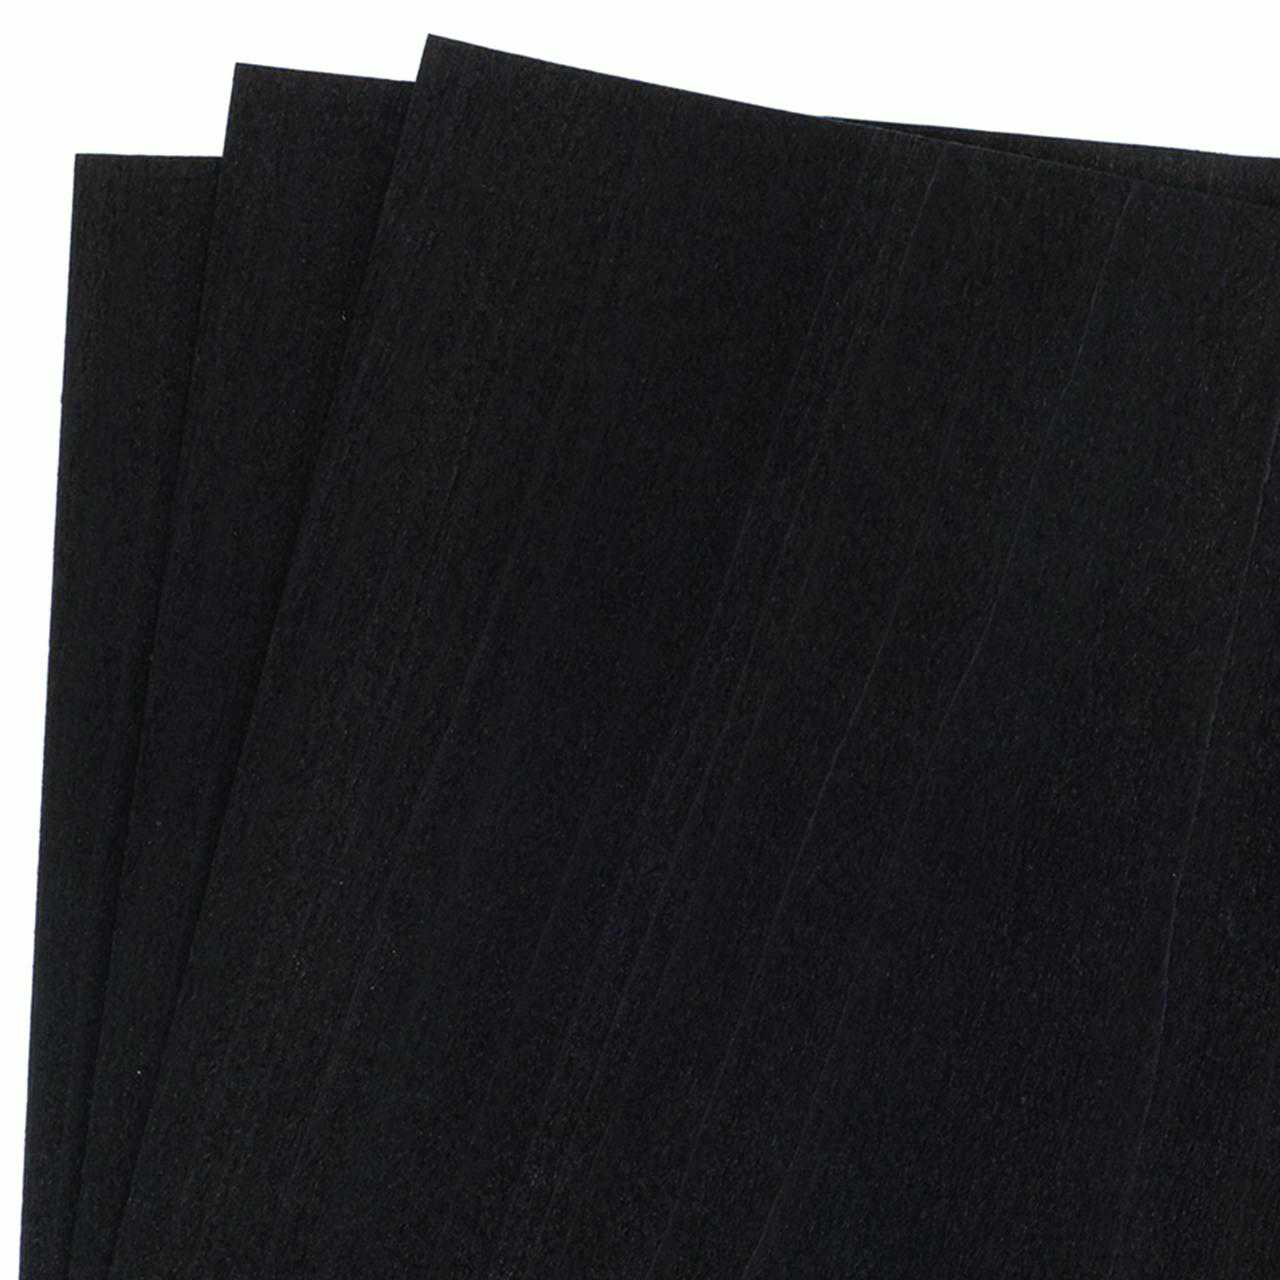 Dyed Black Veneer, 12' x 12', 3-Piece